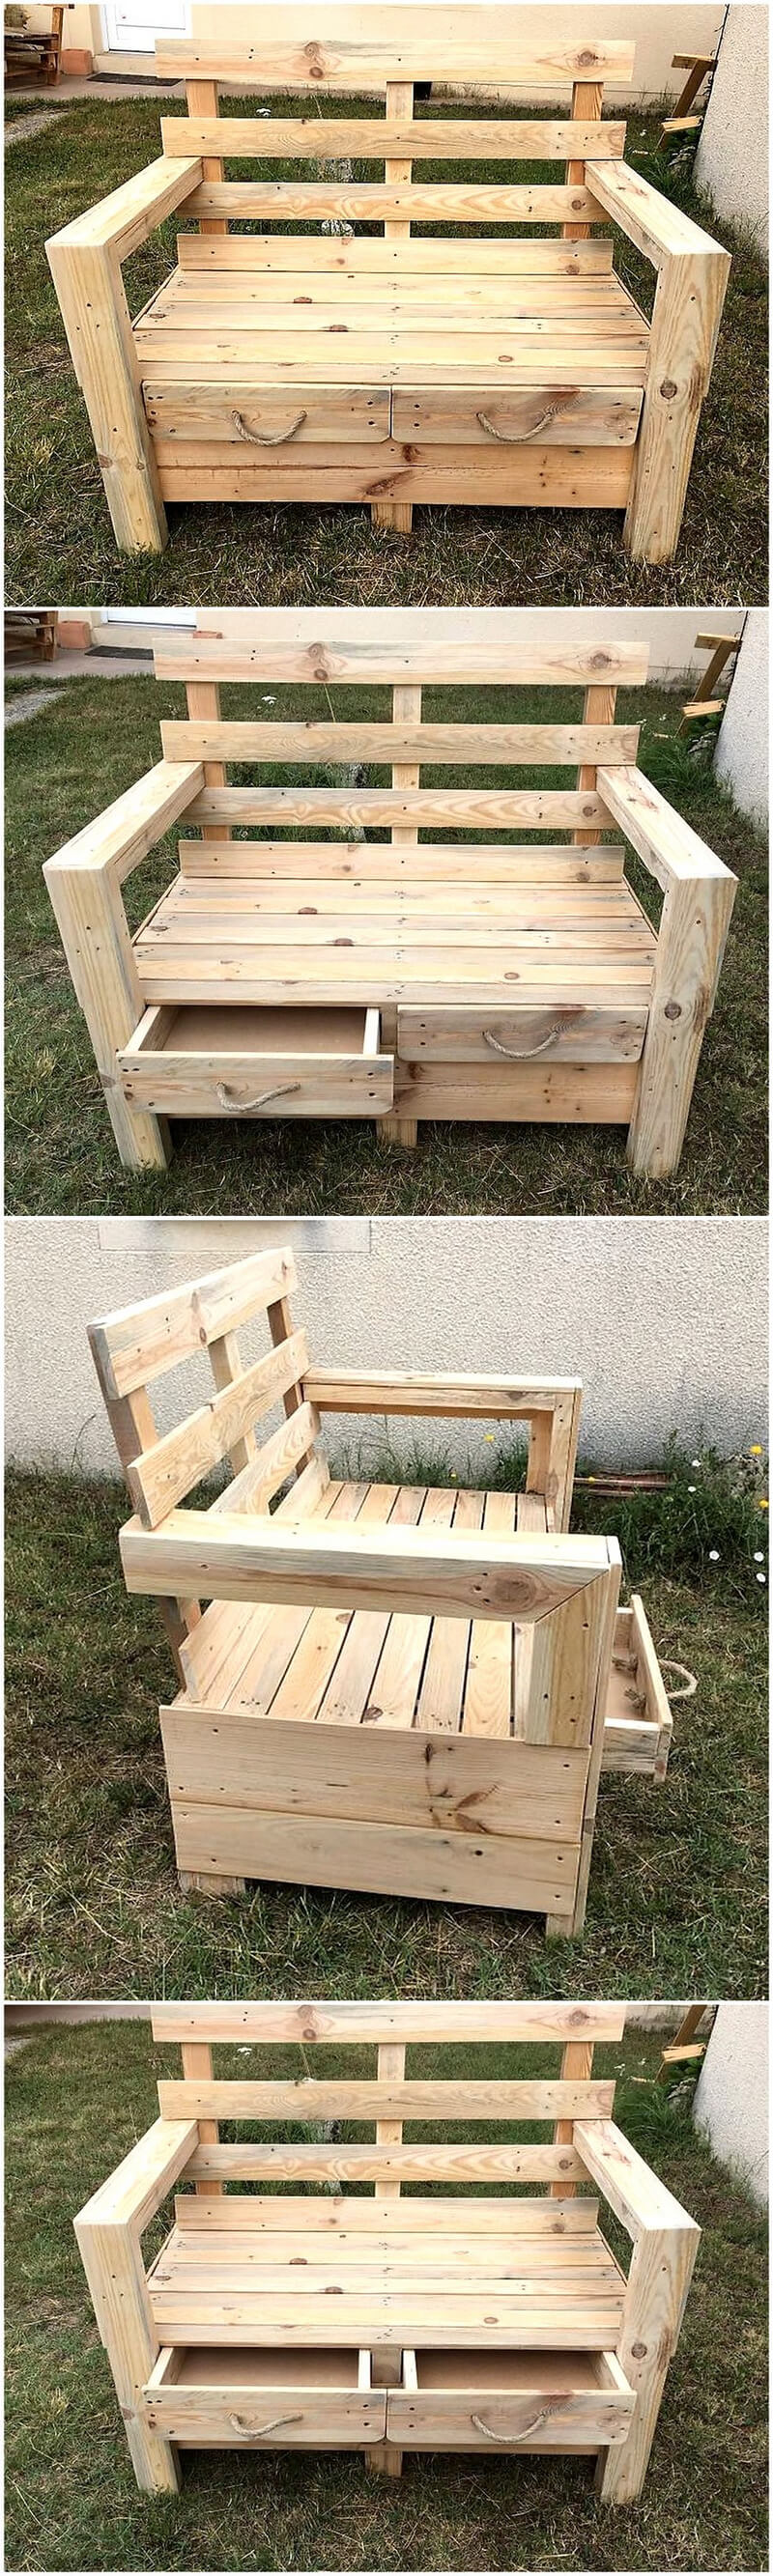 pallets garden chair with storage drawers